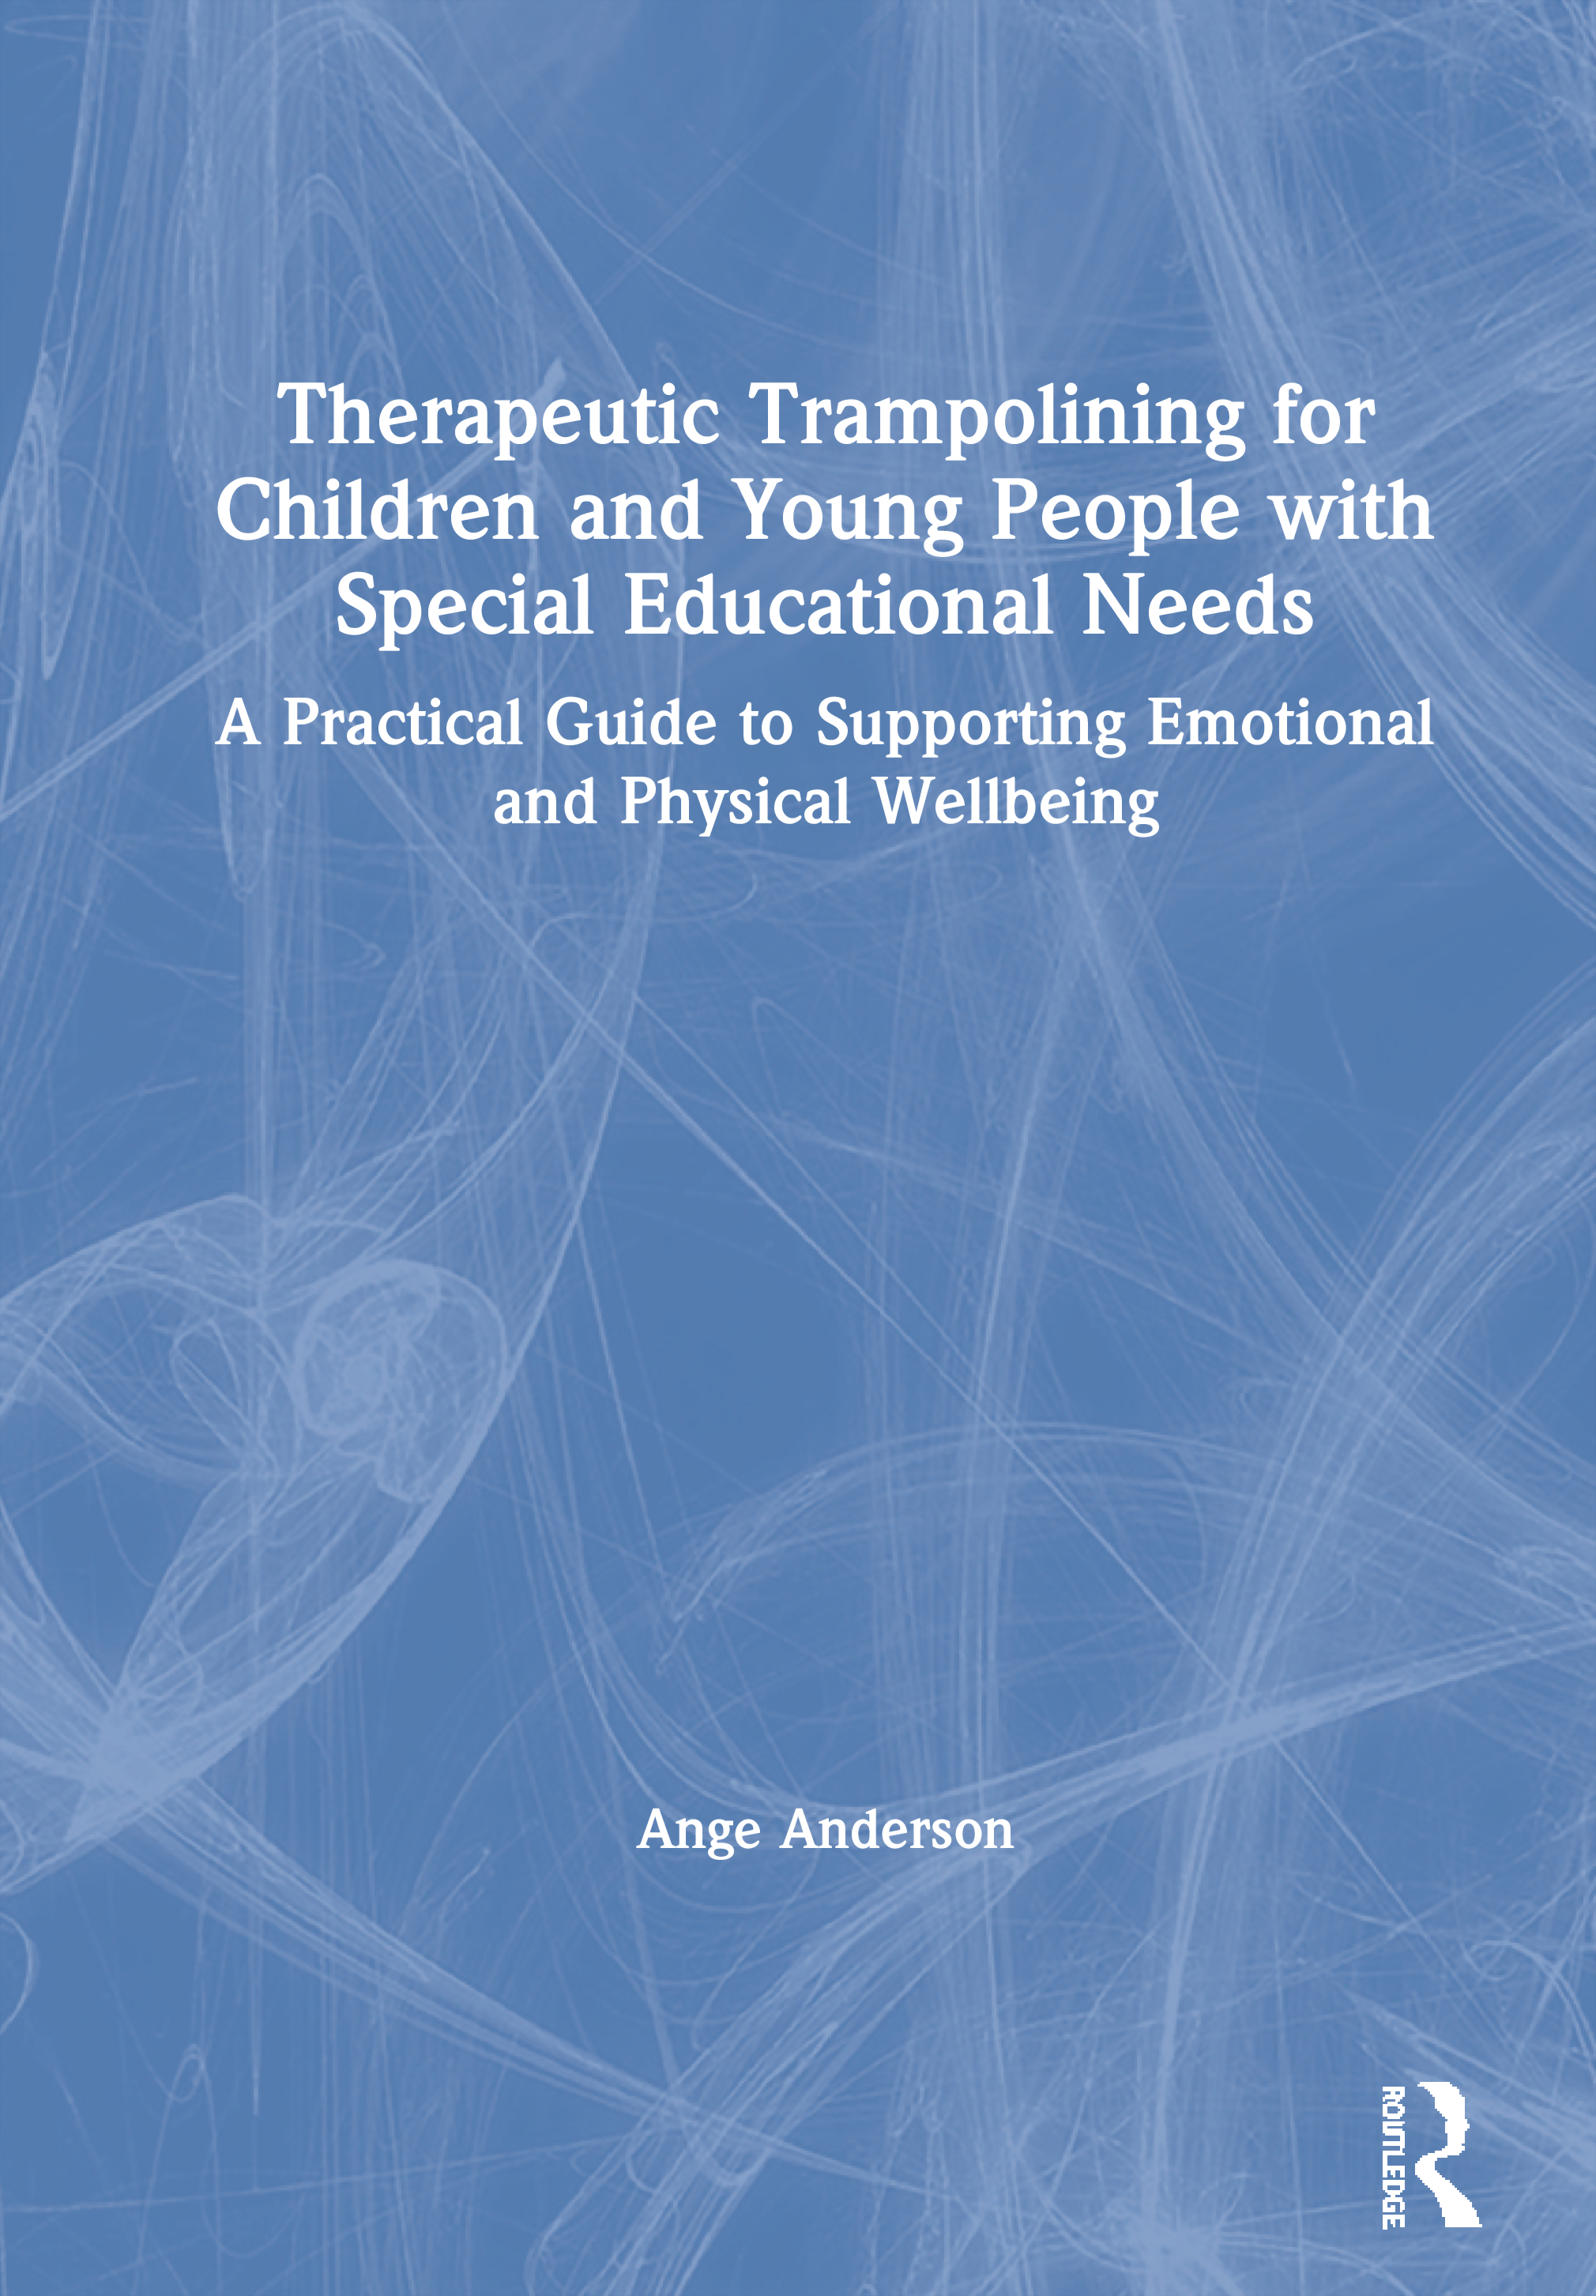 Therapeutic Trampolining for Children and Young People with Special Educational Needs: A Practical Guide to Supporting Emotional and Physical Wellbeing book cover